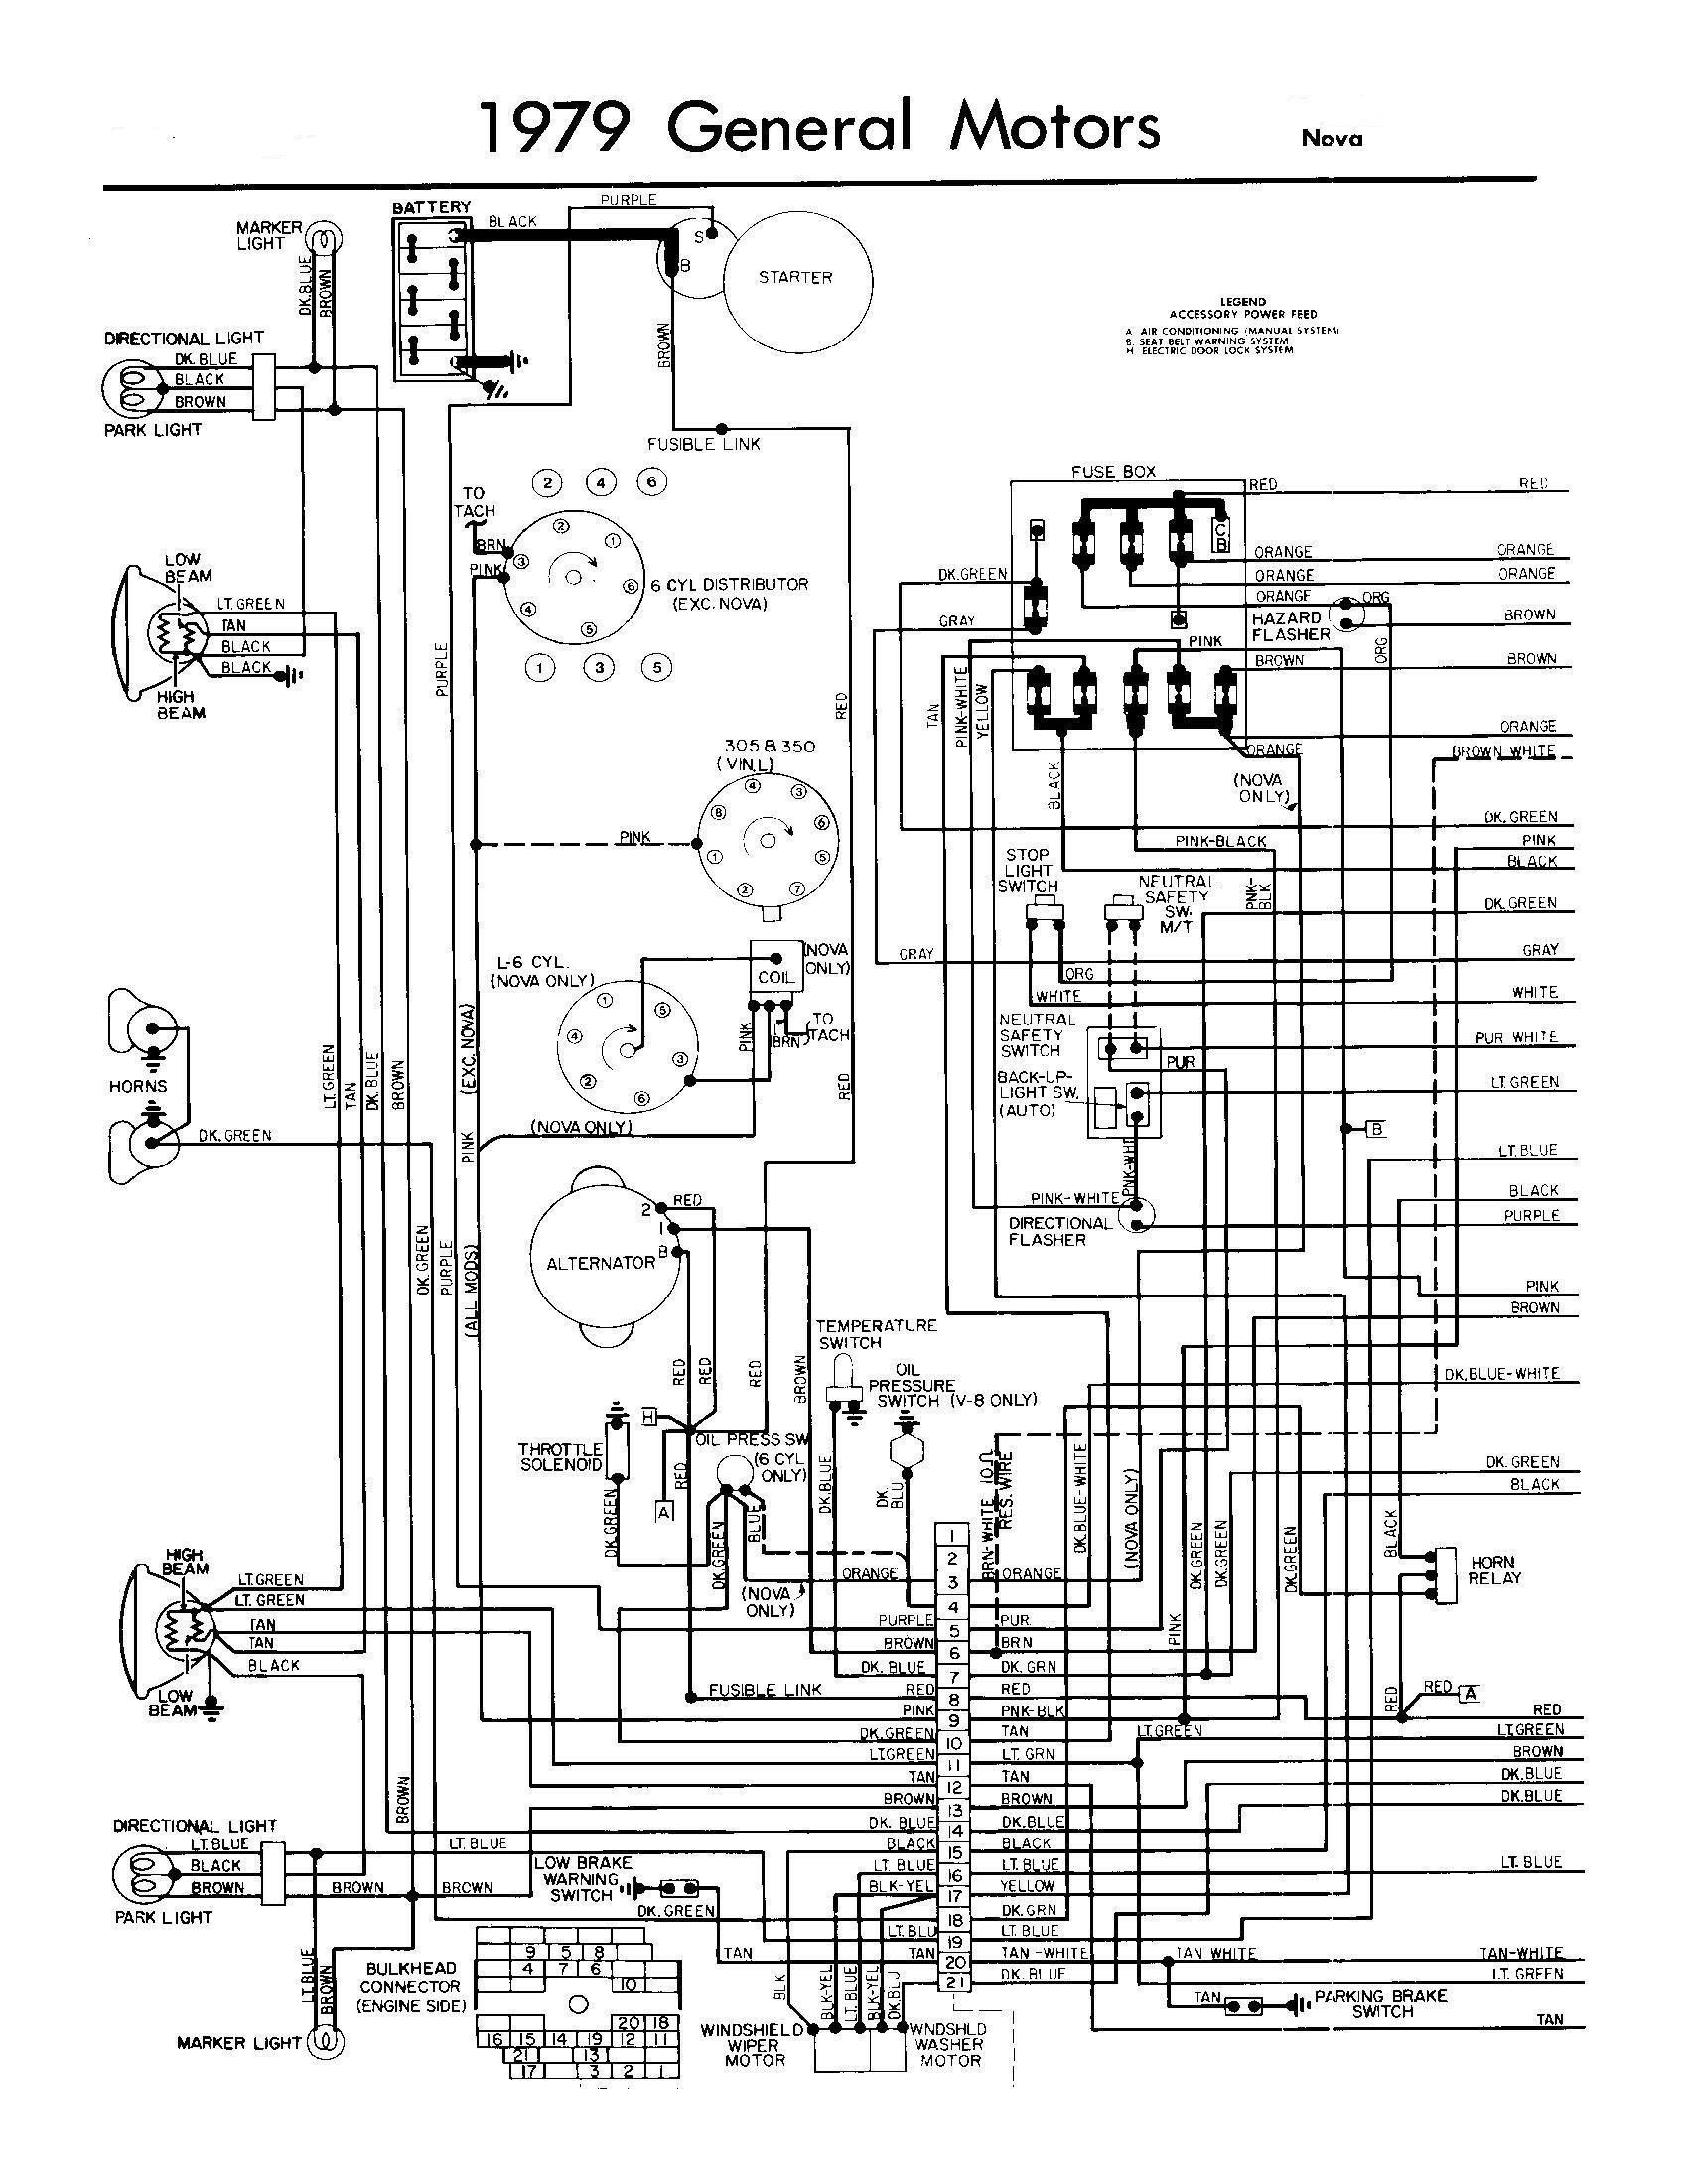 Pin By Diagram Bacamajalah On Wiring Samples